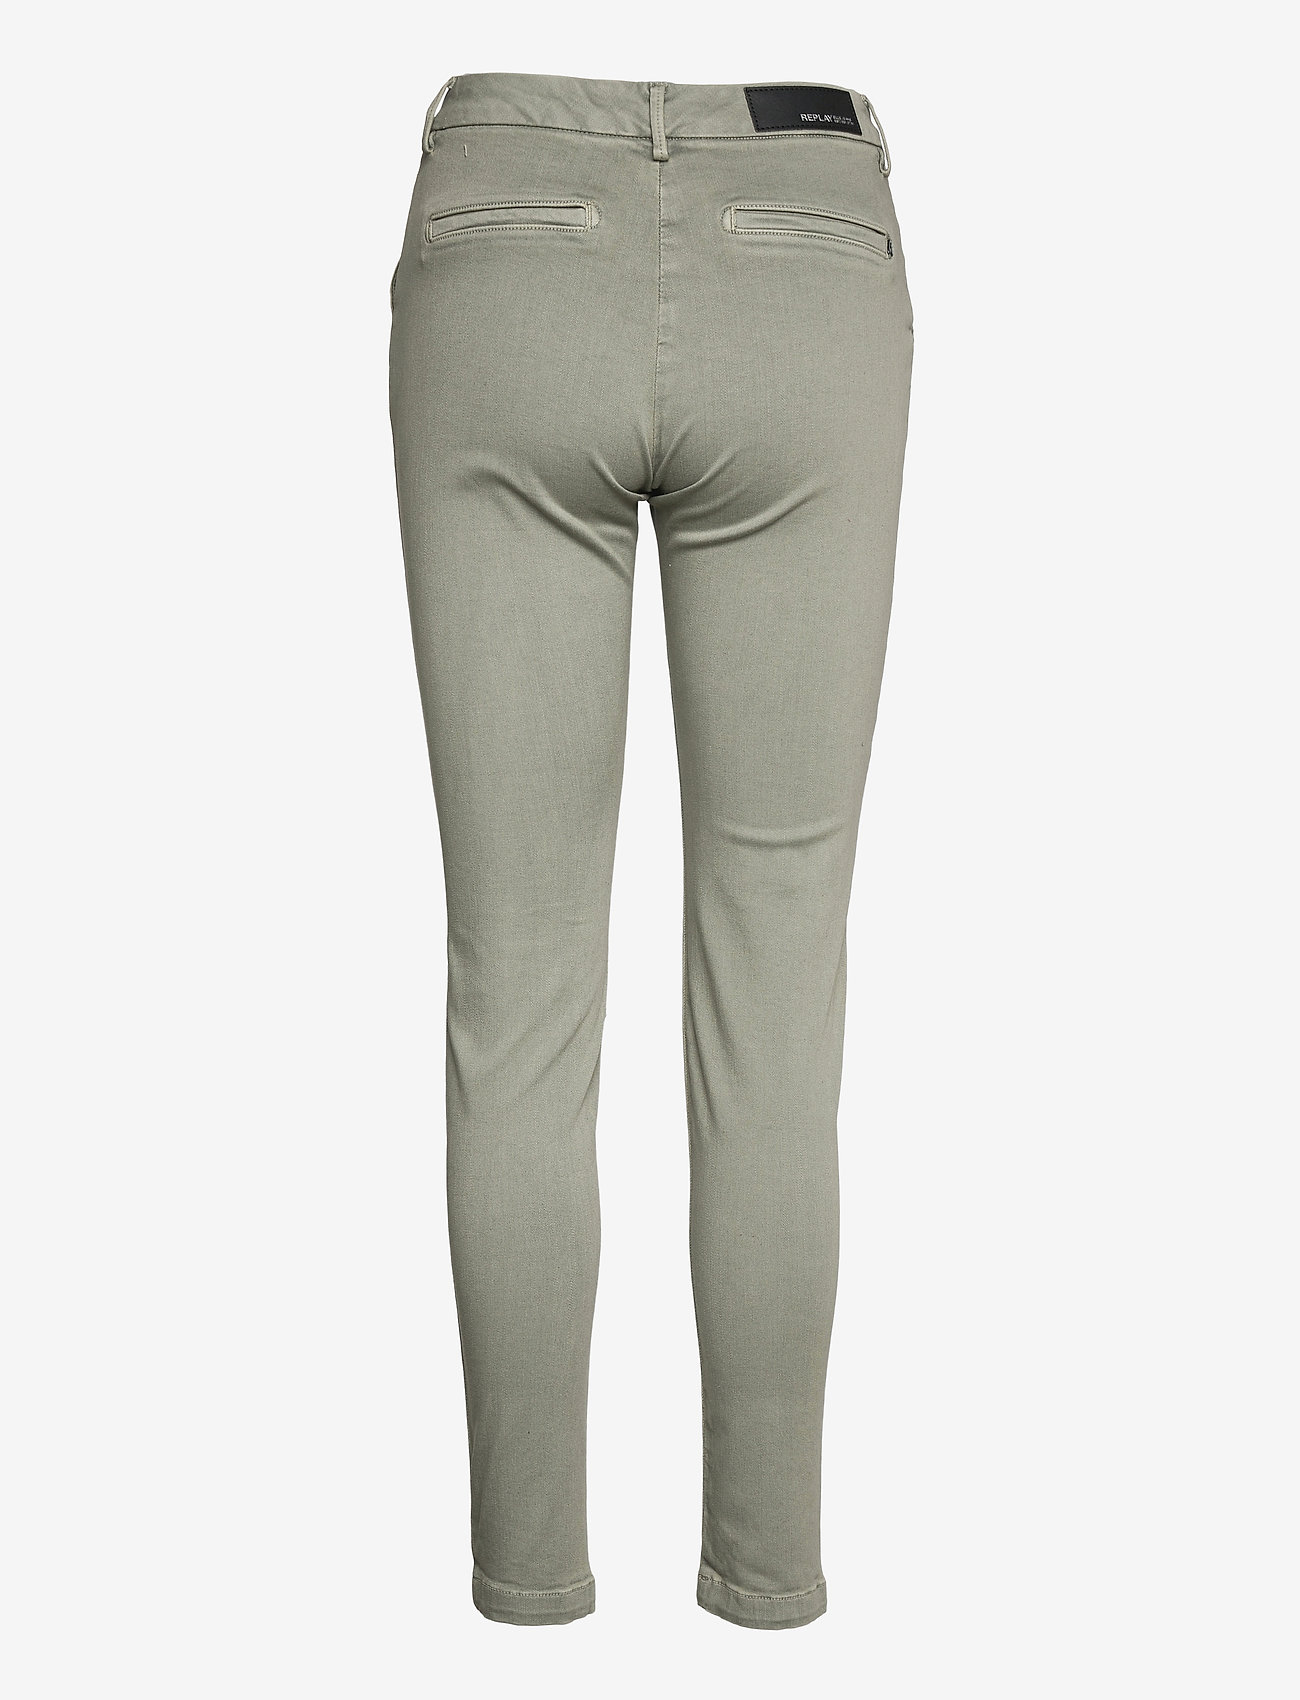 Replay - LYSA HYPERFLEX - slim jeans - sage green - 1